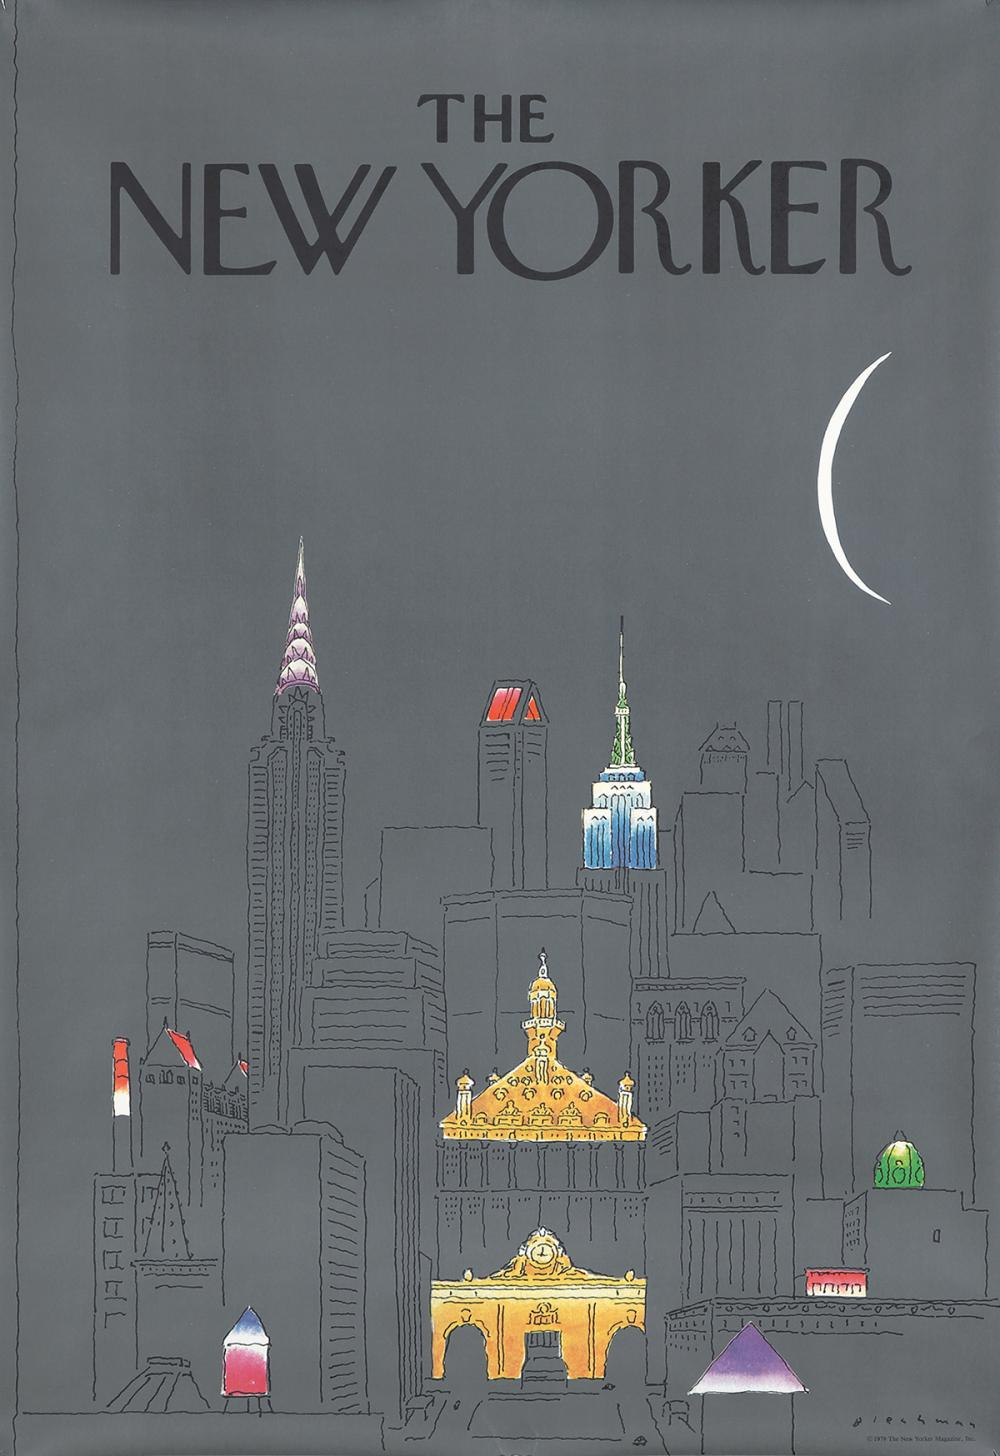 The New Yorker / New York at Night. 1979.